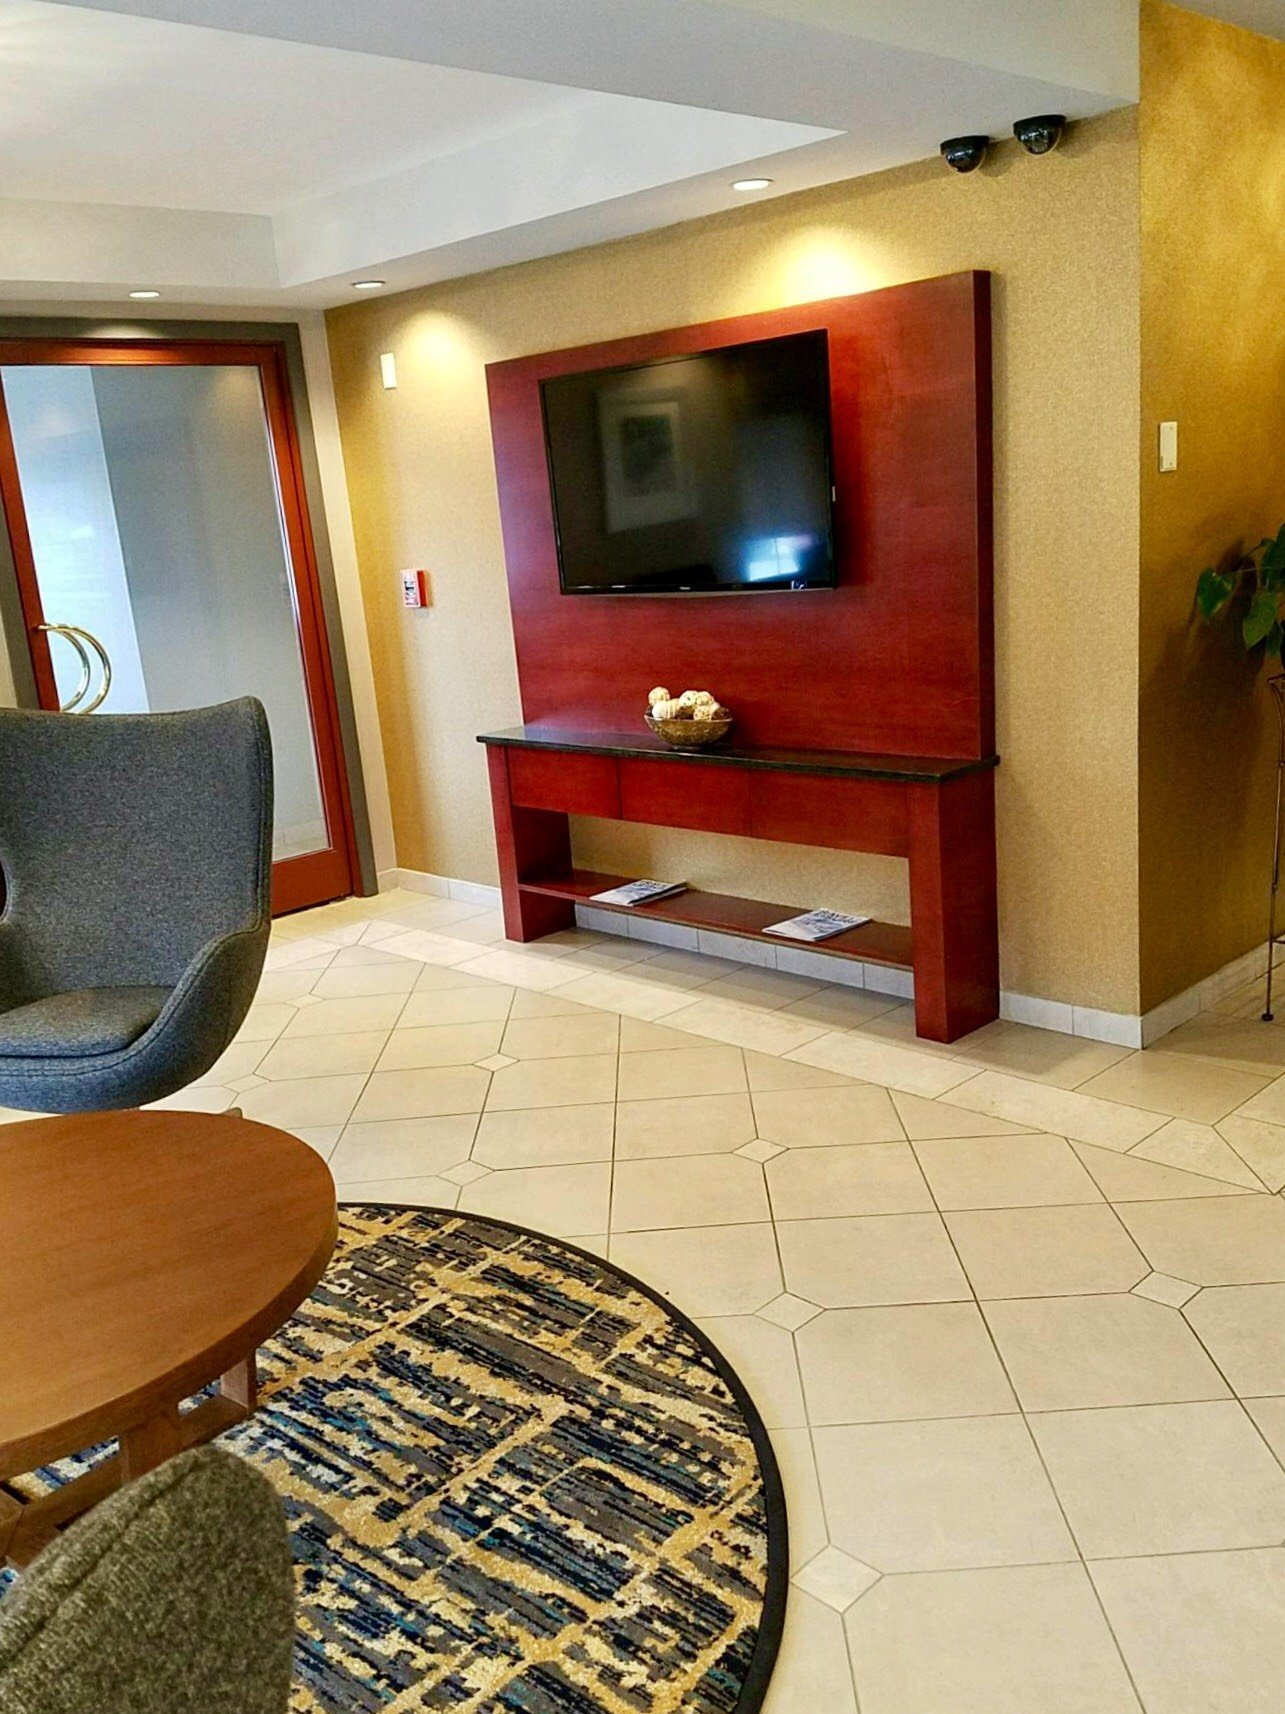 Cheap Hotels Buffalo NY